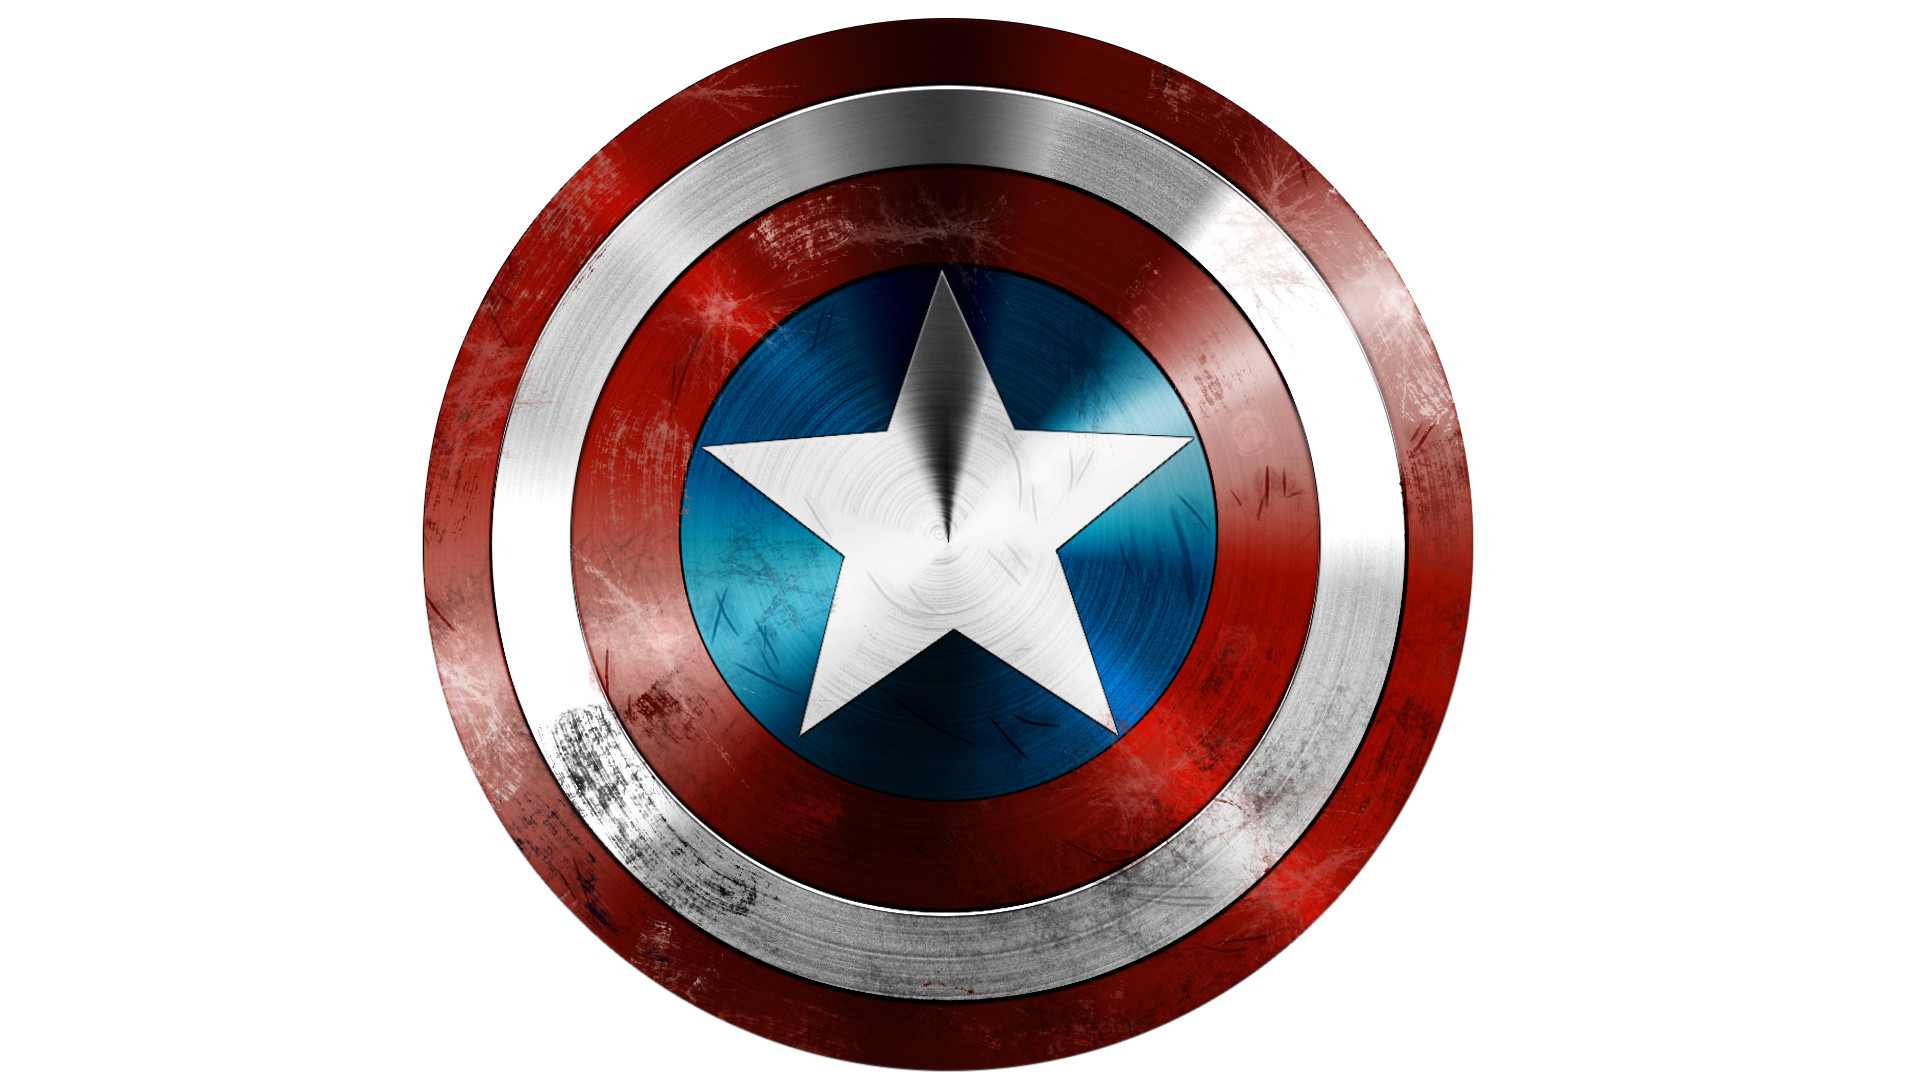 Captain America Shield Wallpapers Desktop Background with HD Wallpaper  Resolution px 1.40 MB Movies Iphone